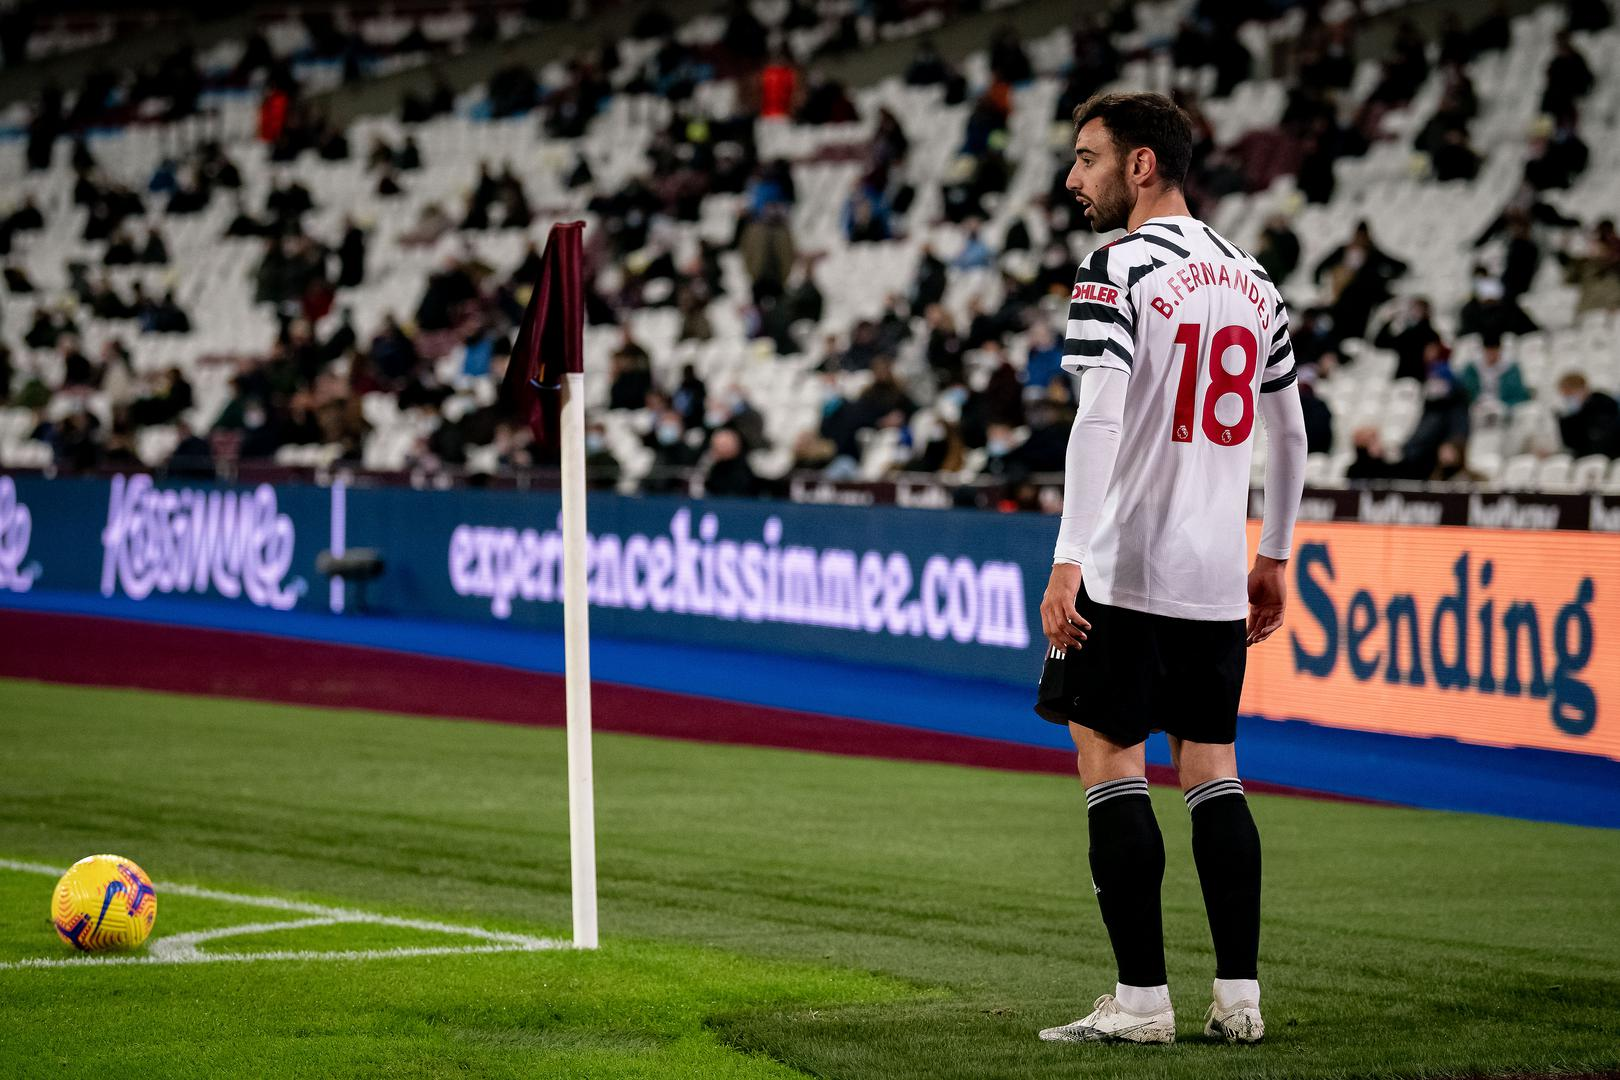 Bruno Fernandes taking a corner against West Ham.